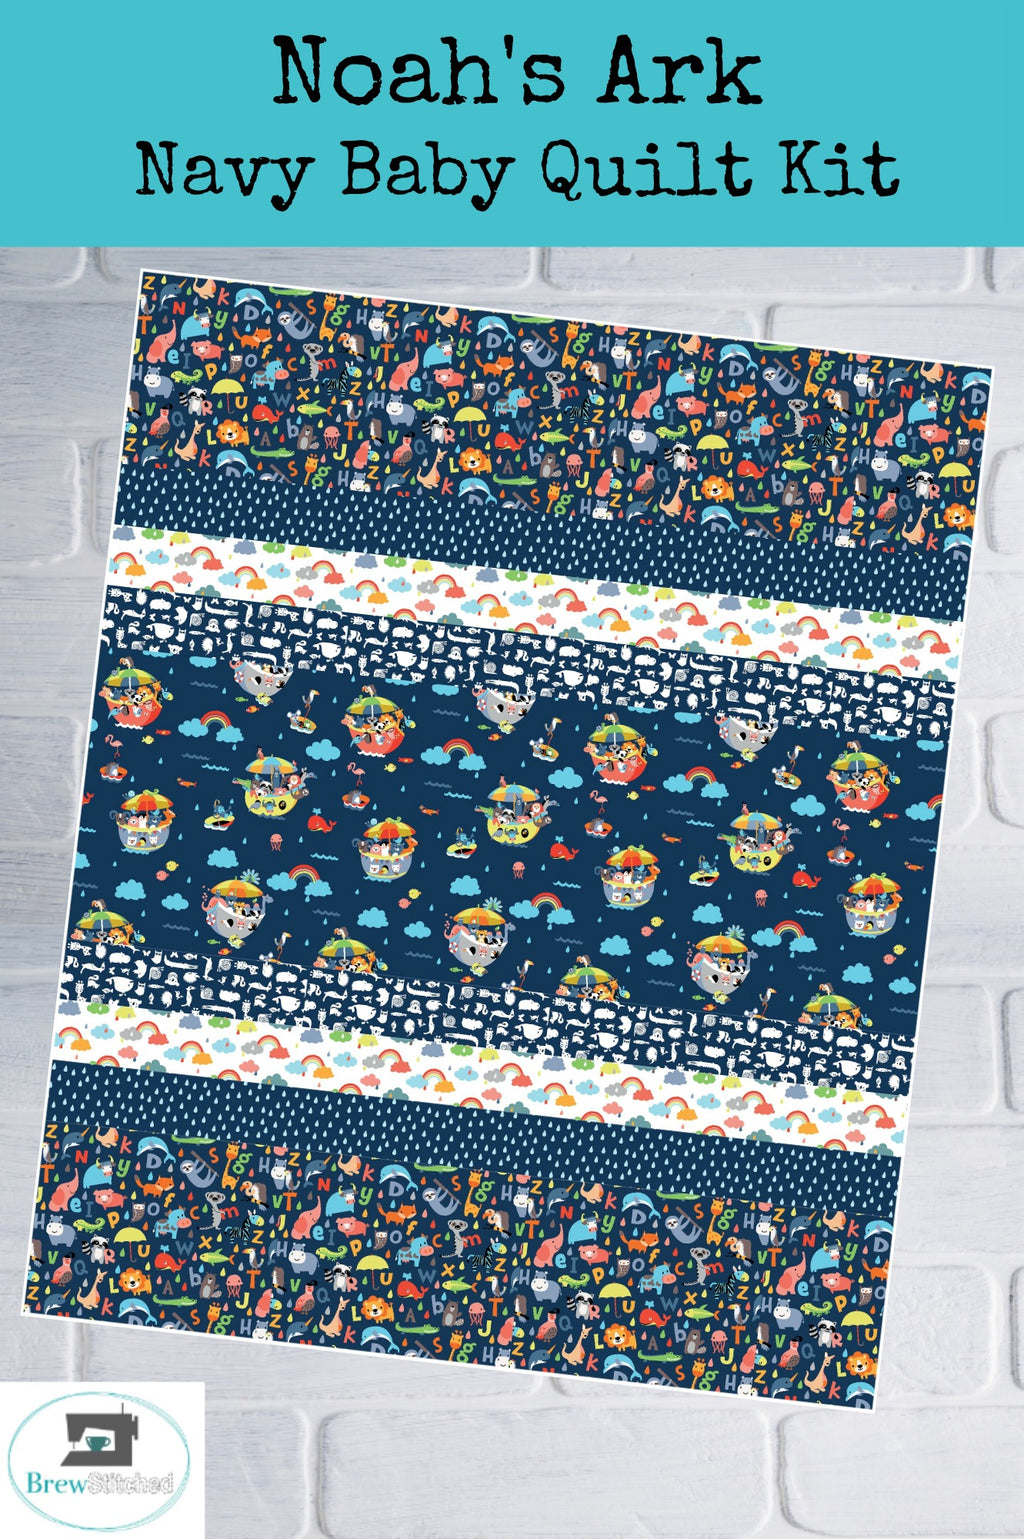 Noah's Ark Baby Quilt Kit in Navy - brewstitched.com